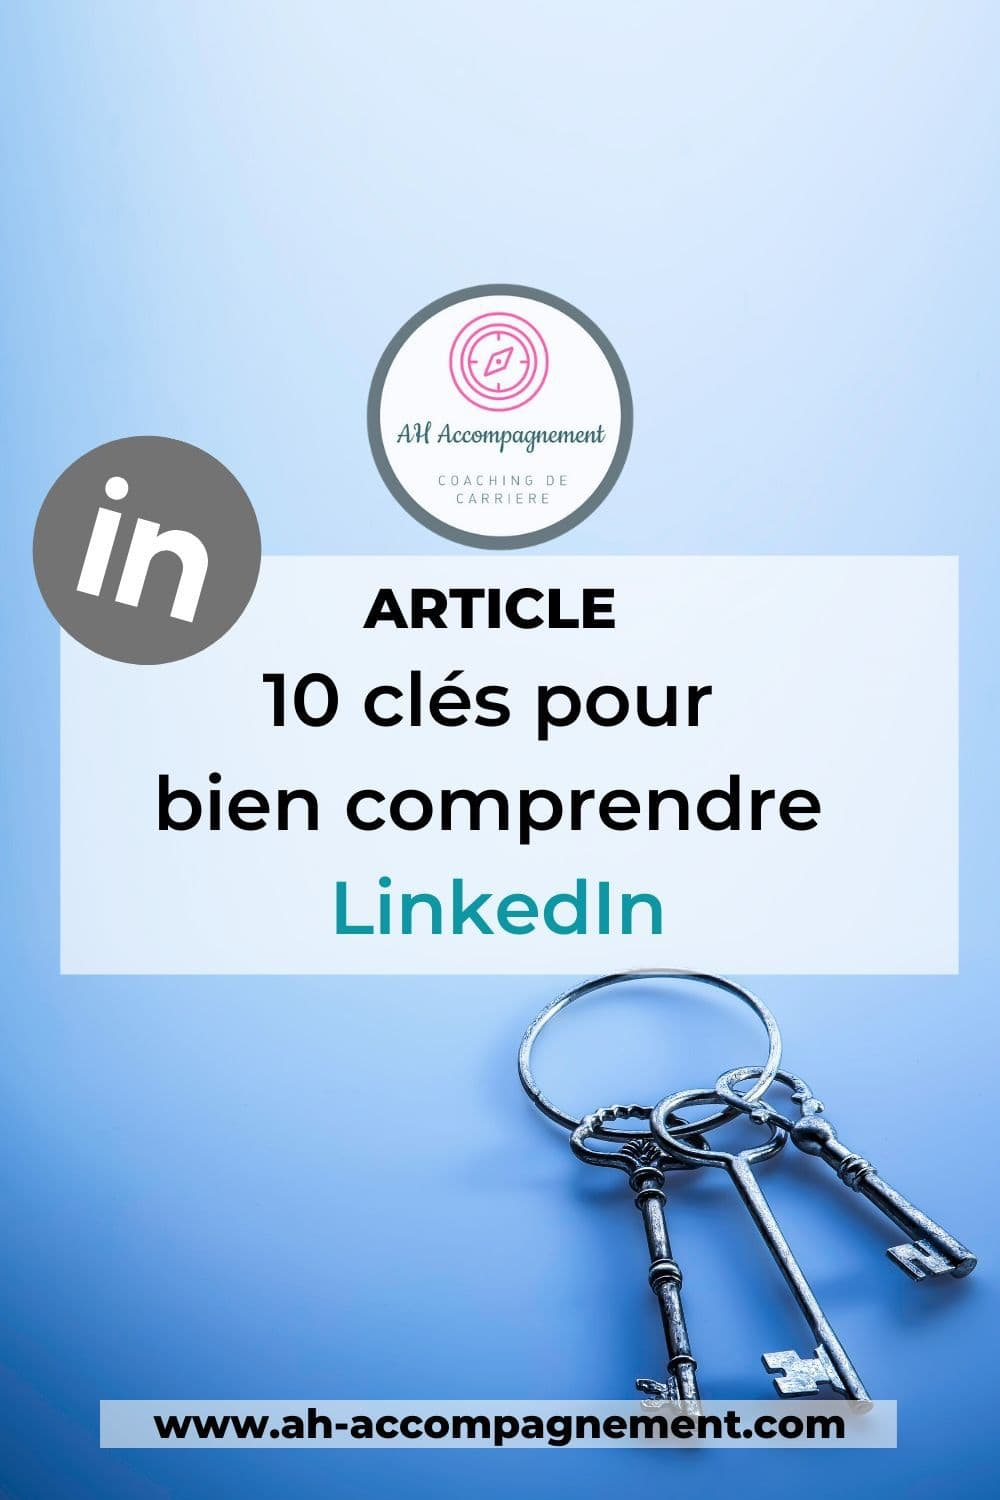 10 cles linkedin ah accompagnement